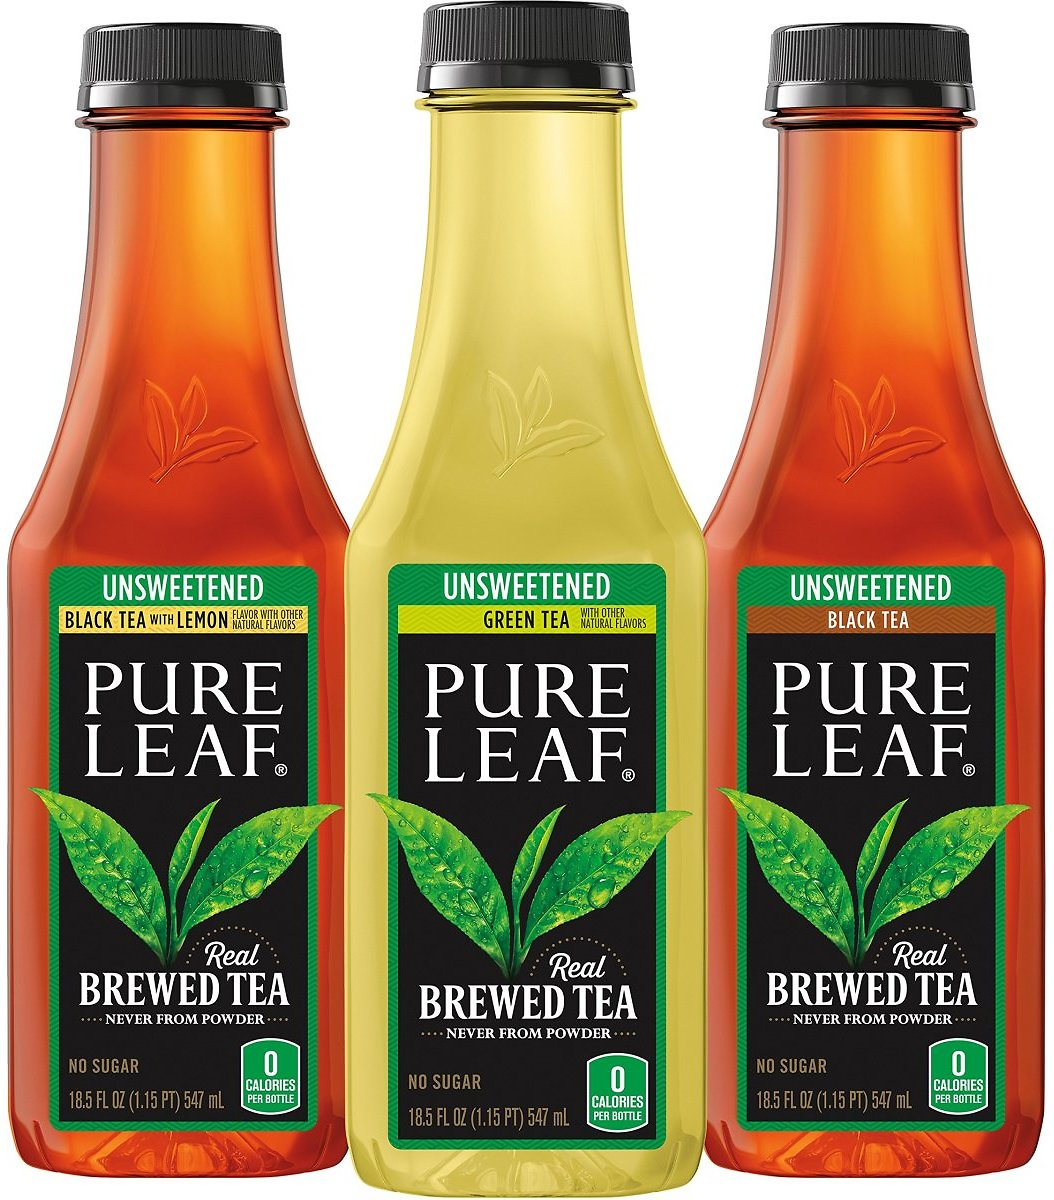 Pure Leaf Iced Tea, 0 Calories Unsweetened Variety Pack, 18.5 Fl Oz (12 Pack) - Subscribe & Save